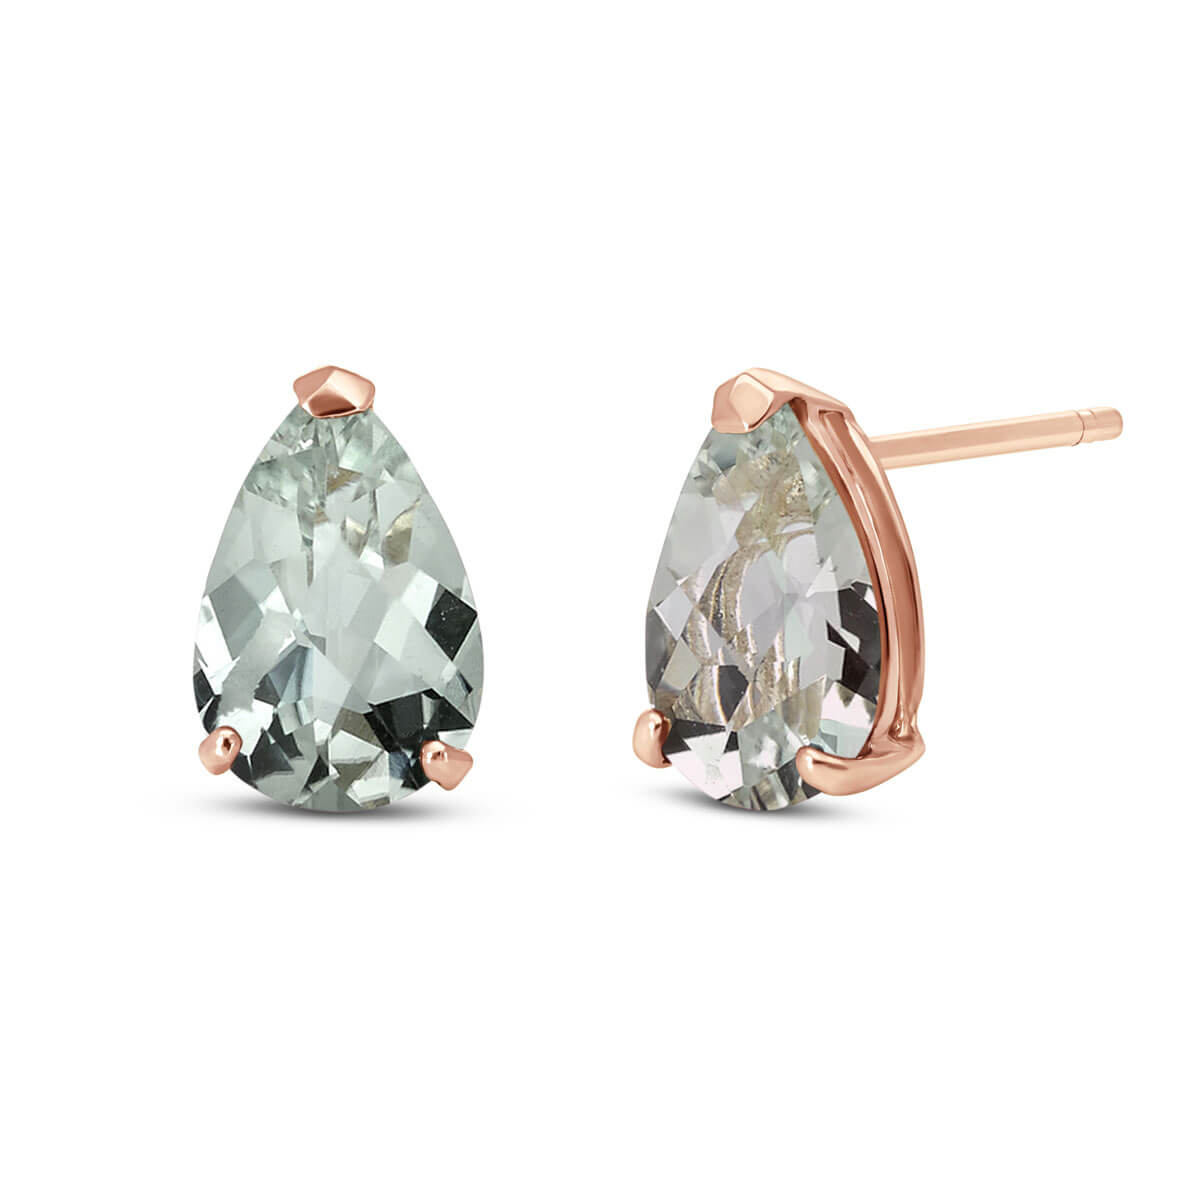 Green Amethyst Stud Earrings 3.15 ctw in 9ct Rose Gold